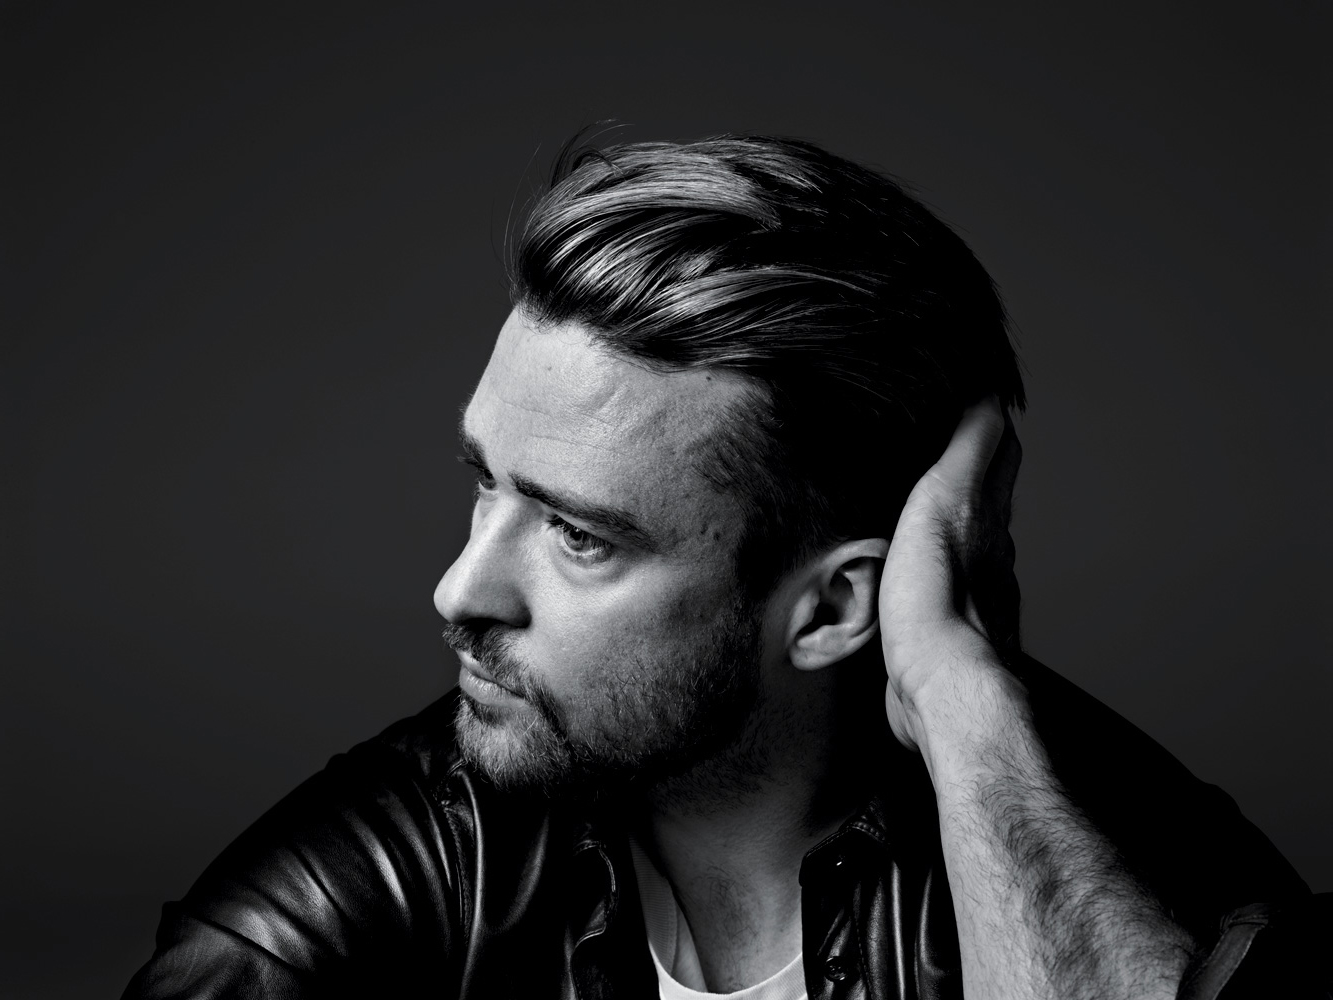 Free Download Justin Timberlake Wallpapers Hd Collection For